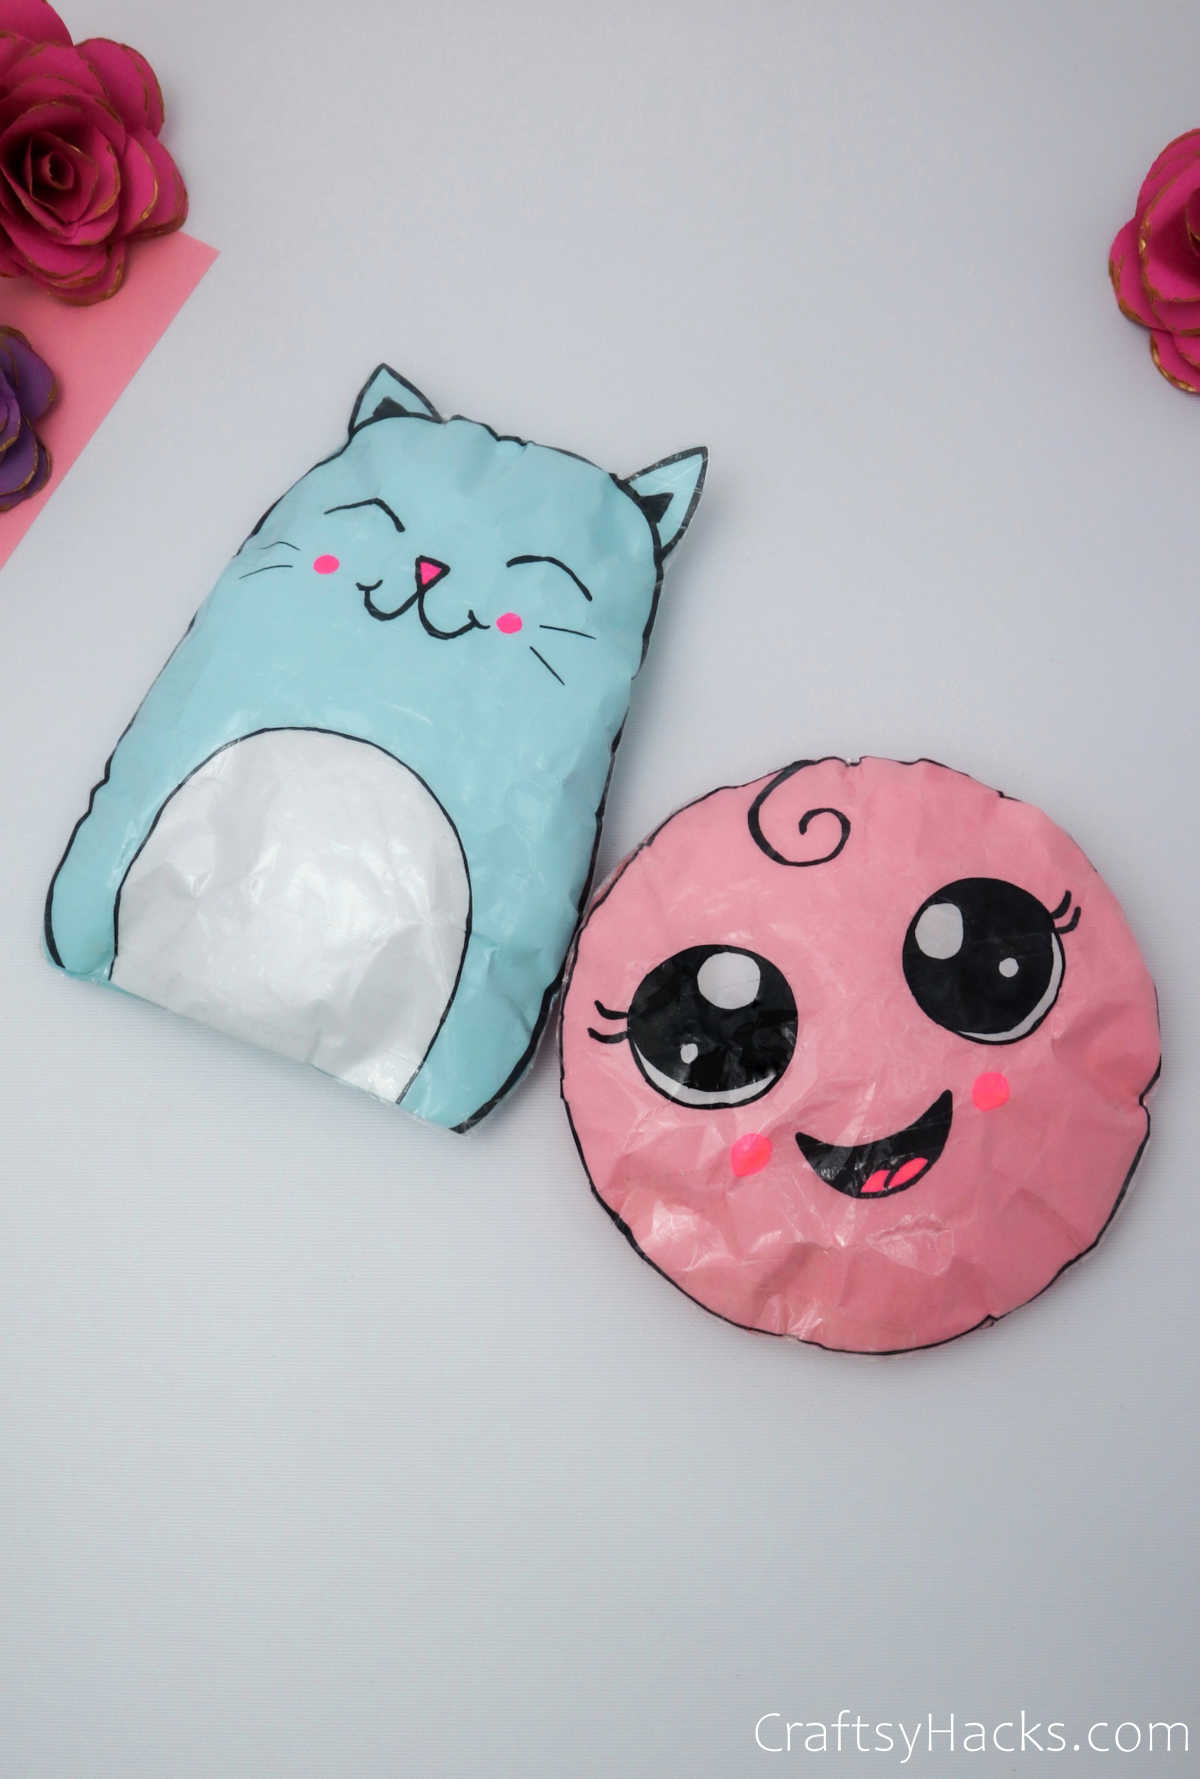 pink and blue squishies